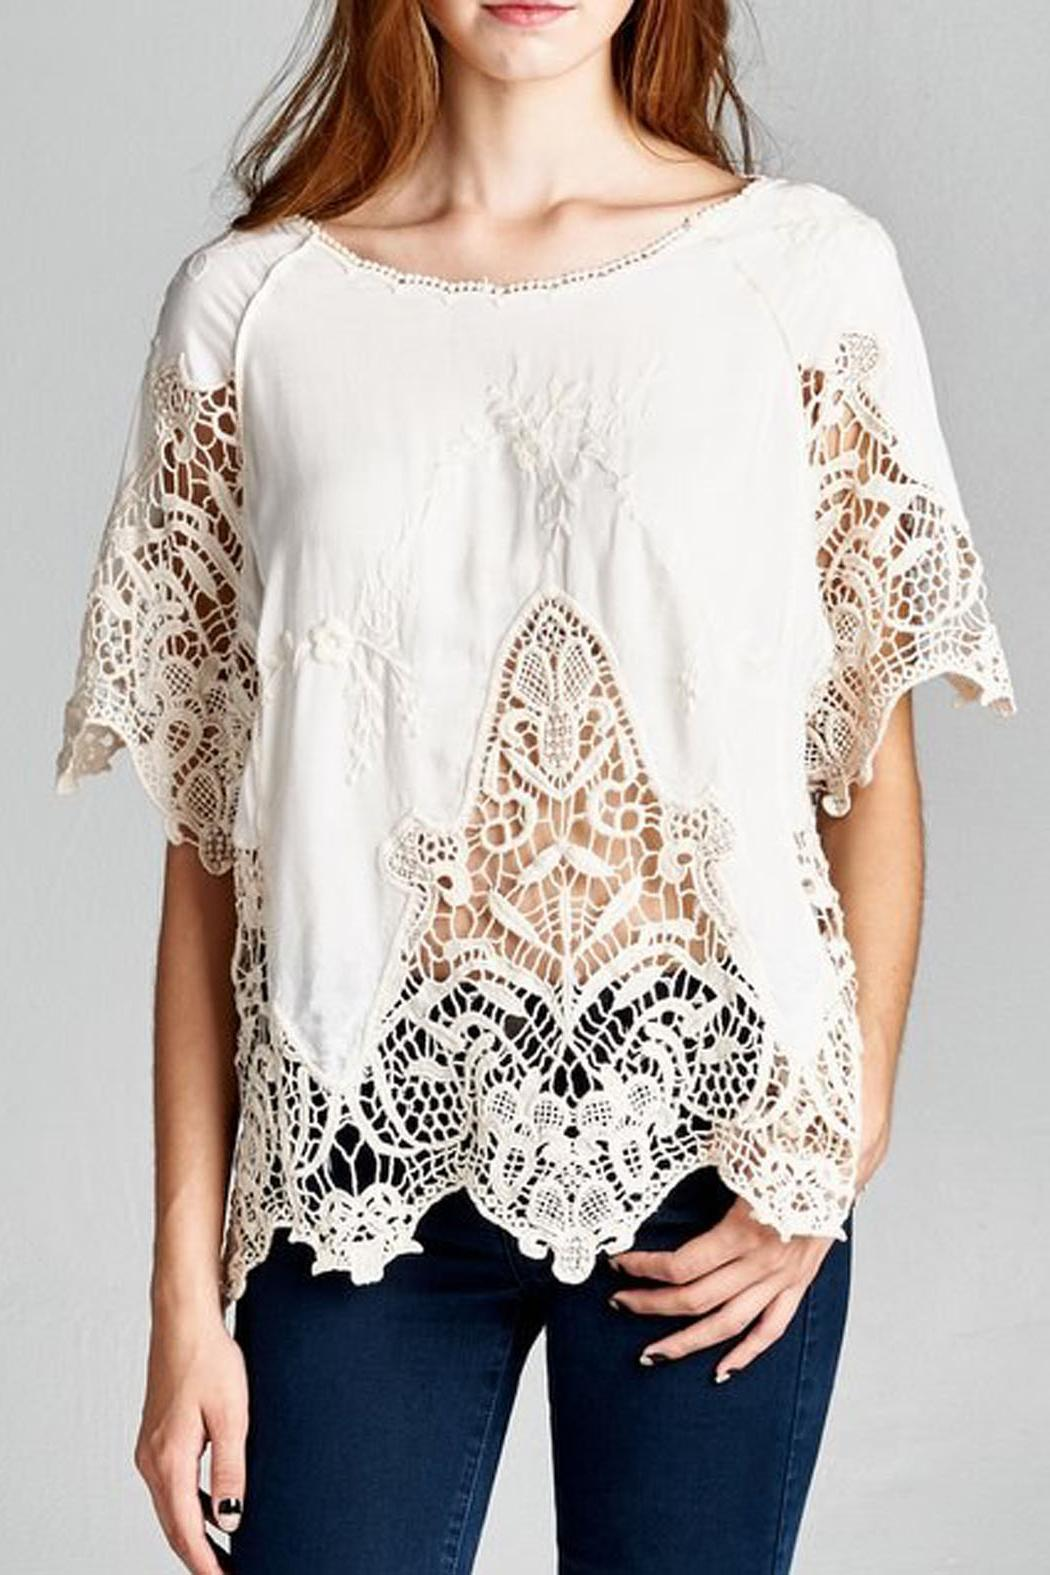 Jodifl Embroidered Crochet Blouse - Main Image